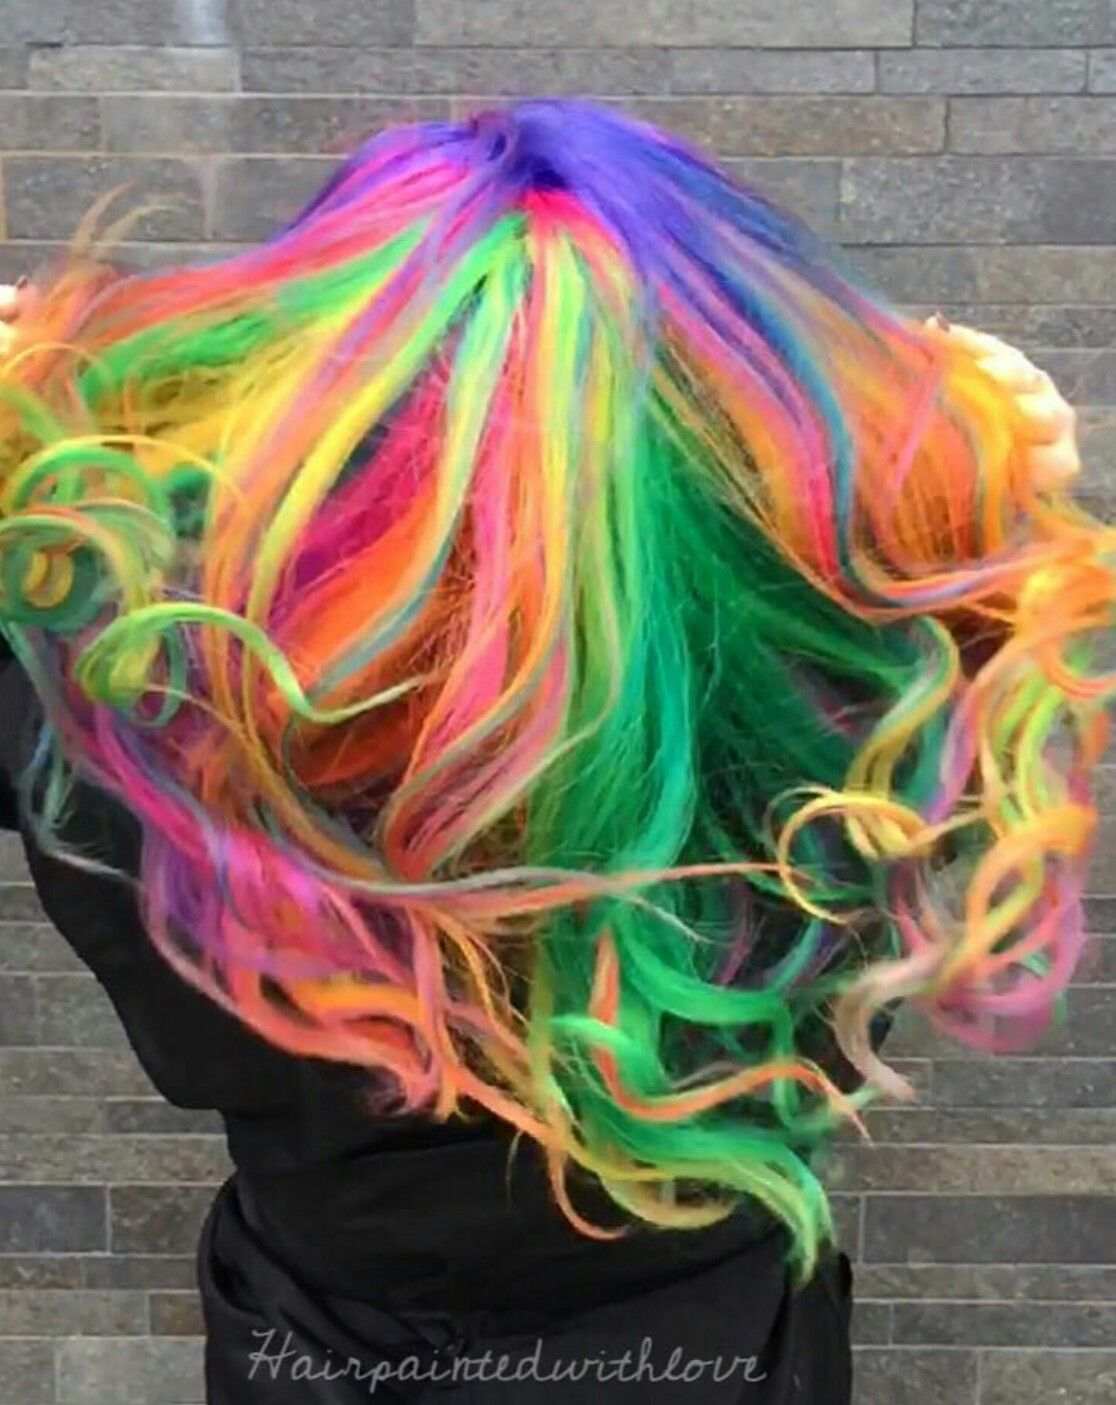 Pin By Katy On Colorful Hair Pinterest Hair Coloring Beautiful